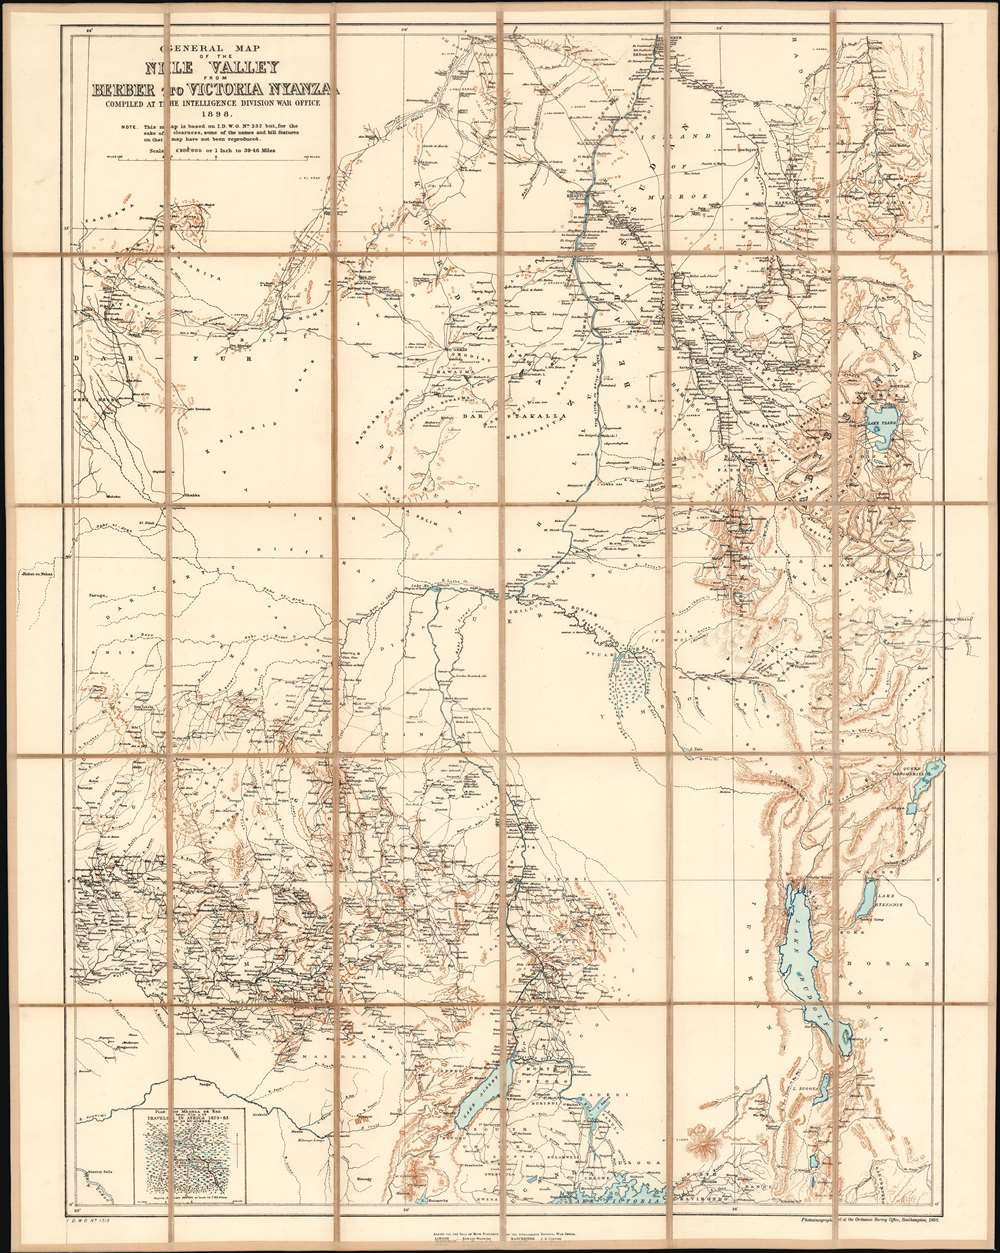 General Map of the Nile Valley from Berber to Victoria Nyanza Compiled at the Intelligence Division War Office 1898. - Main View